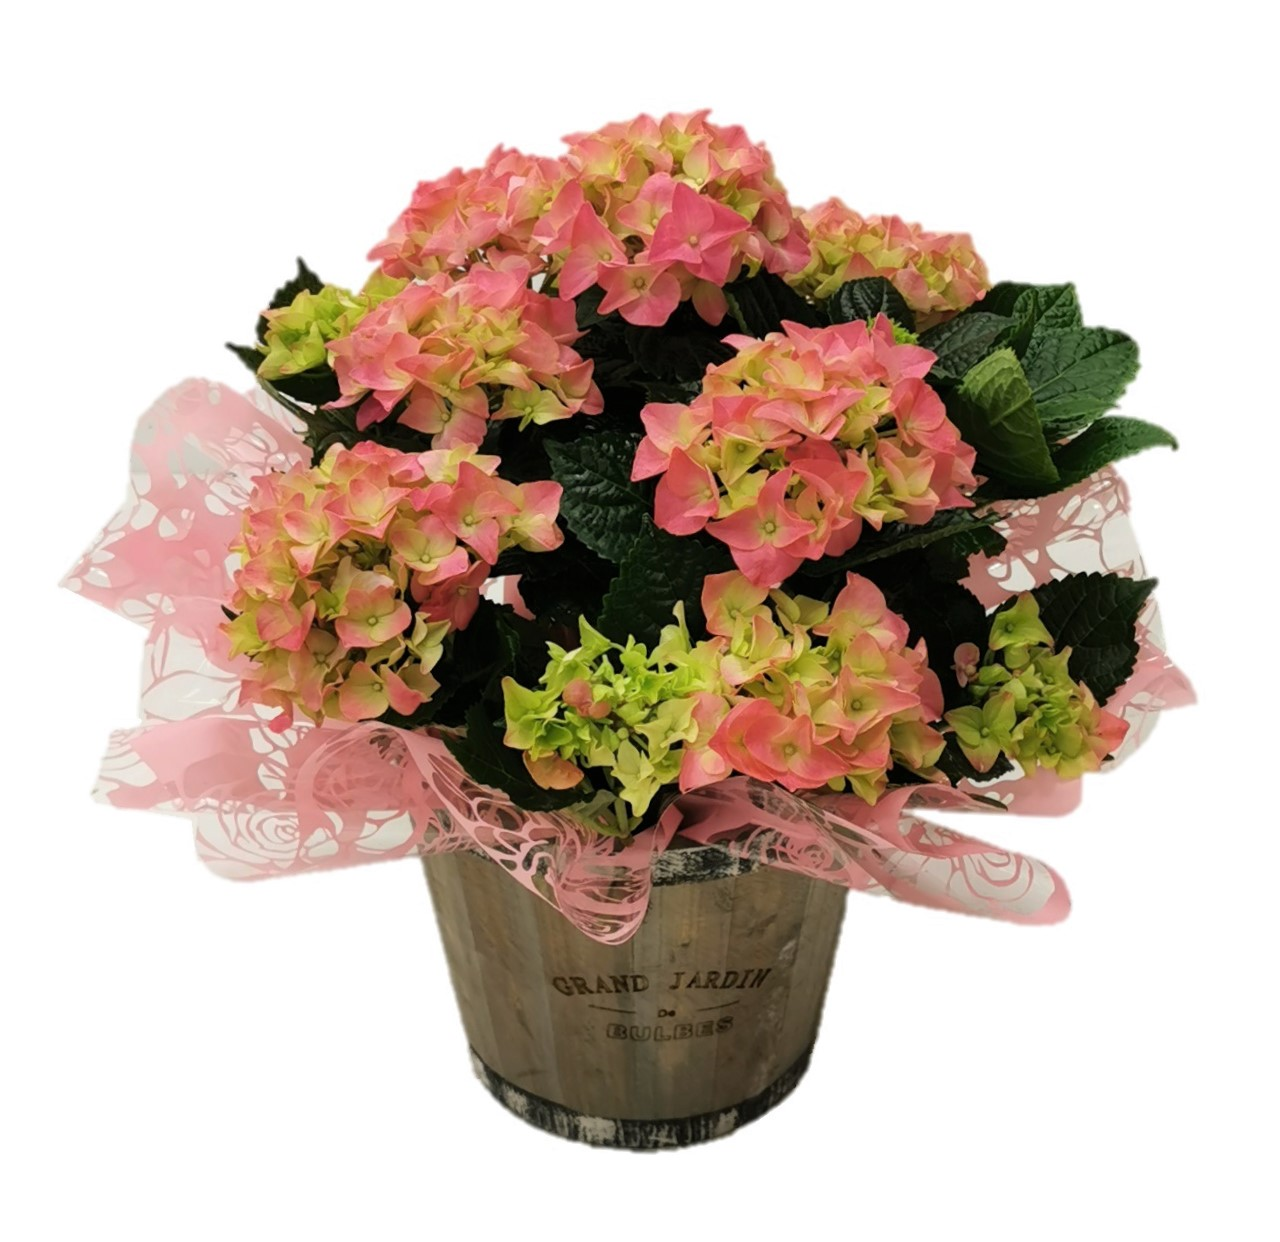 Hydrangea plant in barrel bucket